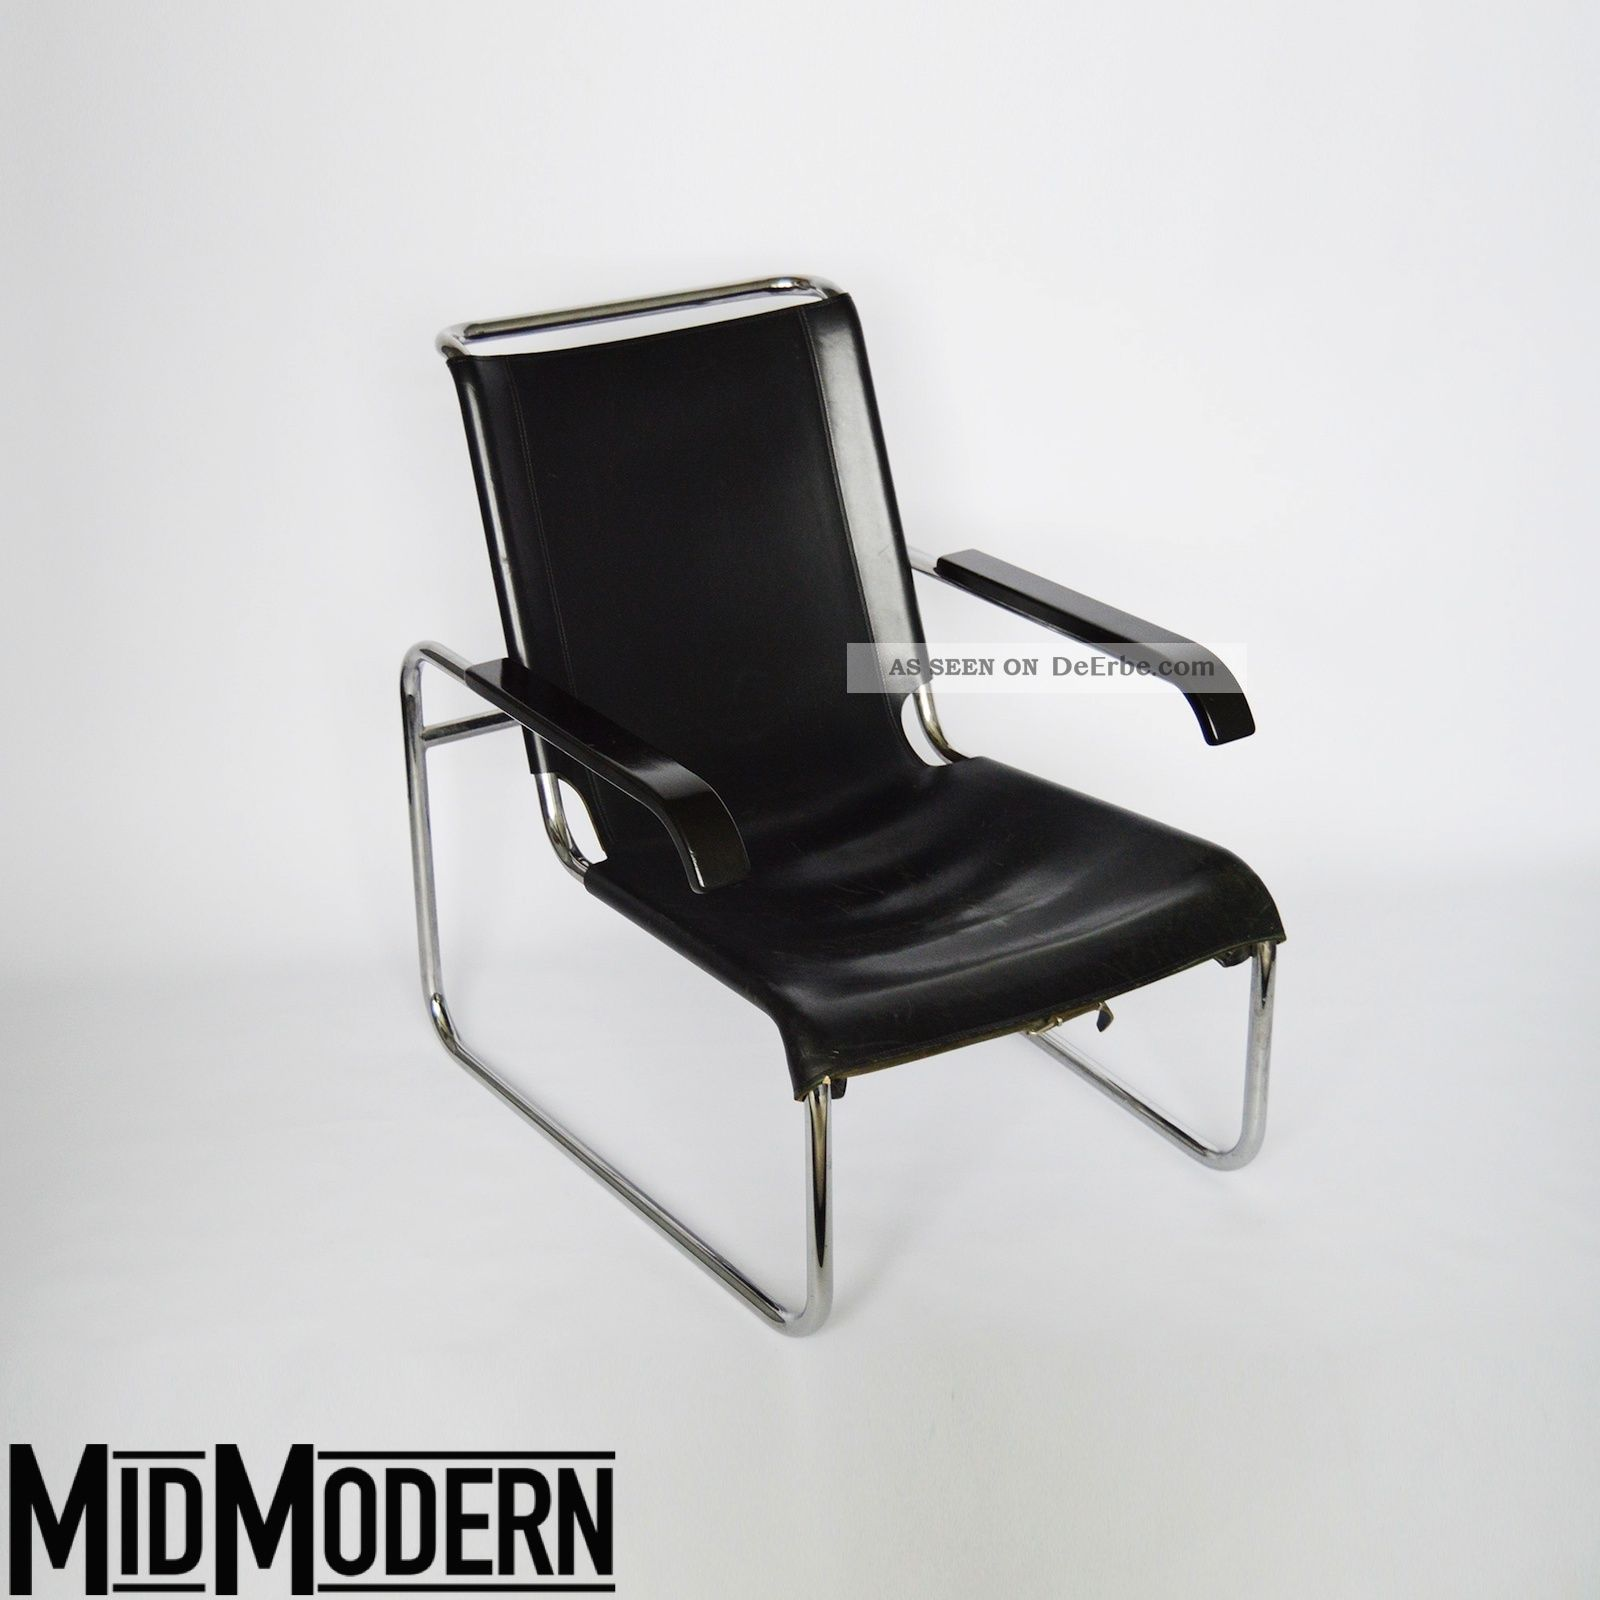 thonet s 35 by marcel breuer 1929 freischwinger sessel. Black Bedroom Furniture Sets. Home Design Ideas